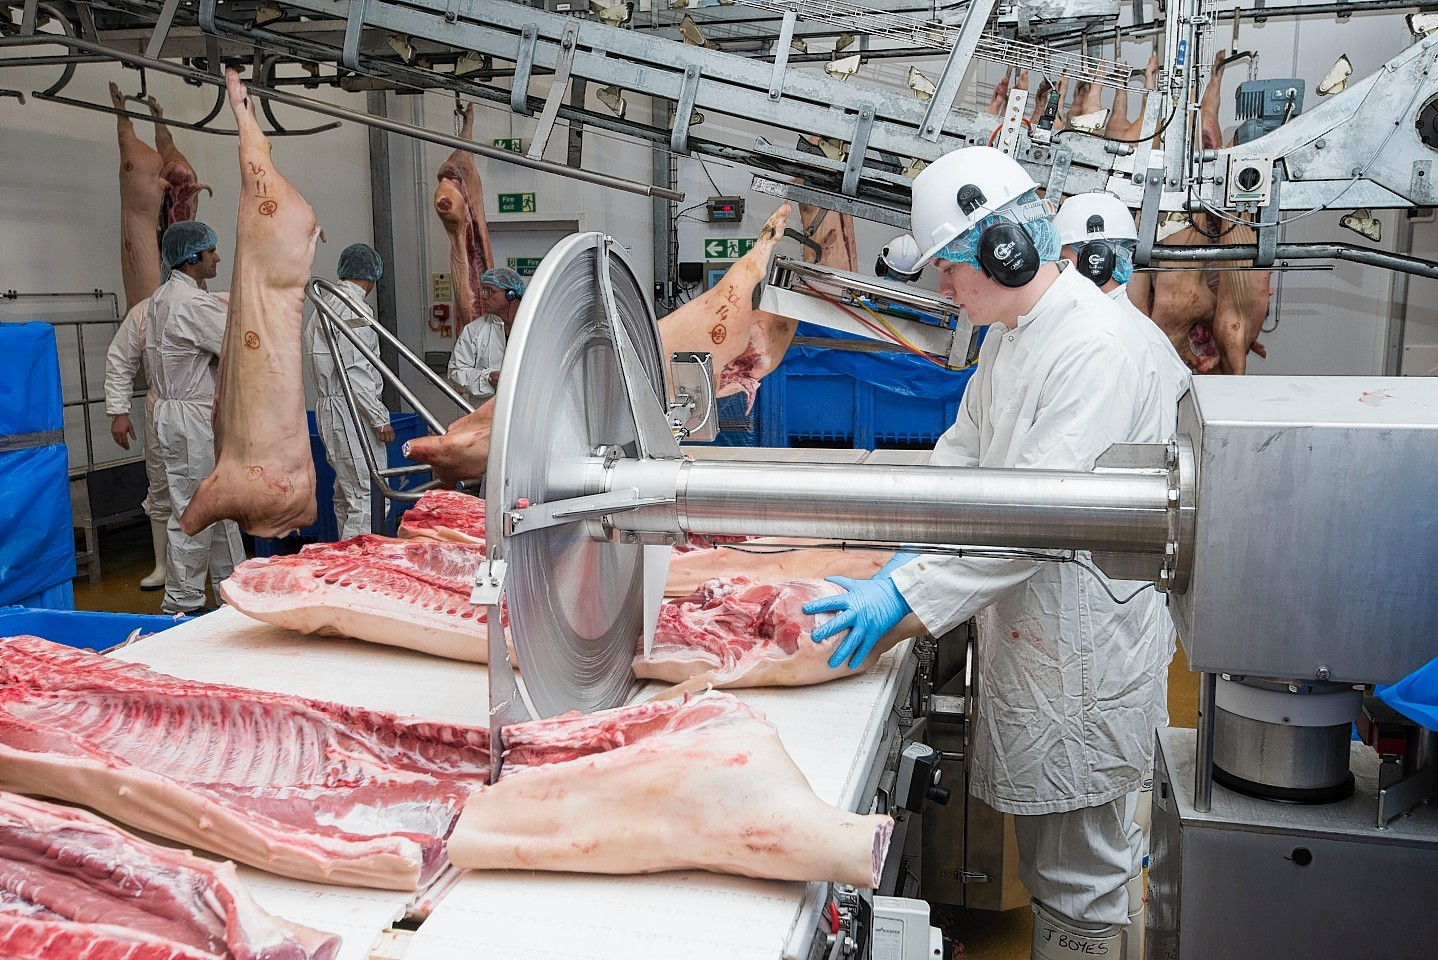 meat industry essay Essay about upton sinclair and the chicago meat-packing industry 1094 words   5 pages upton sinclair and the chicago meat-packing industry in 1900, there were over 16 million people living in chicago, the country's second largest city.